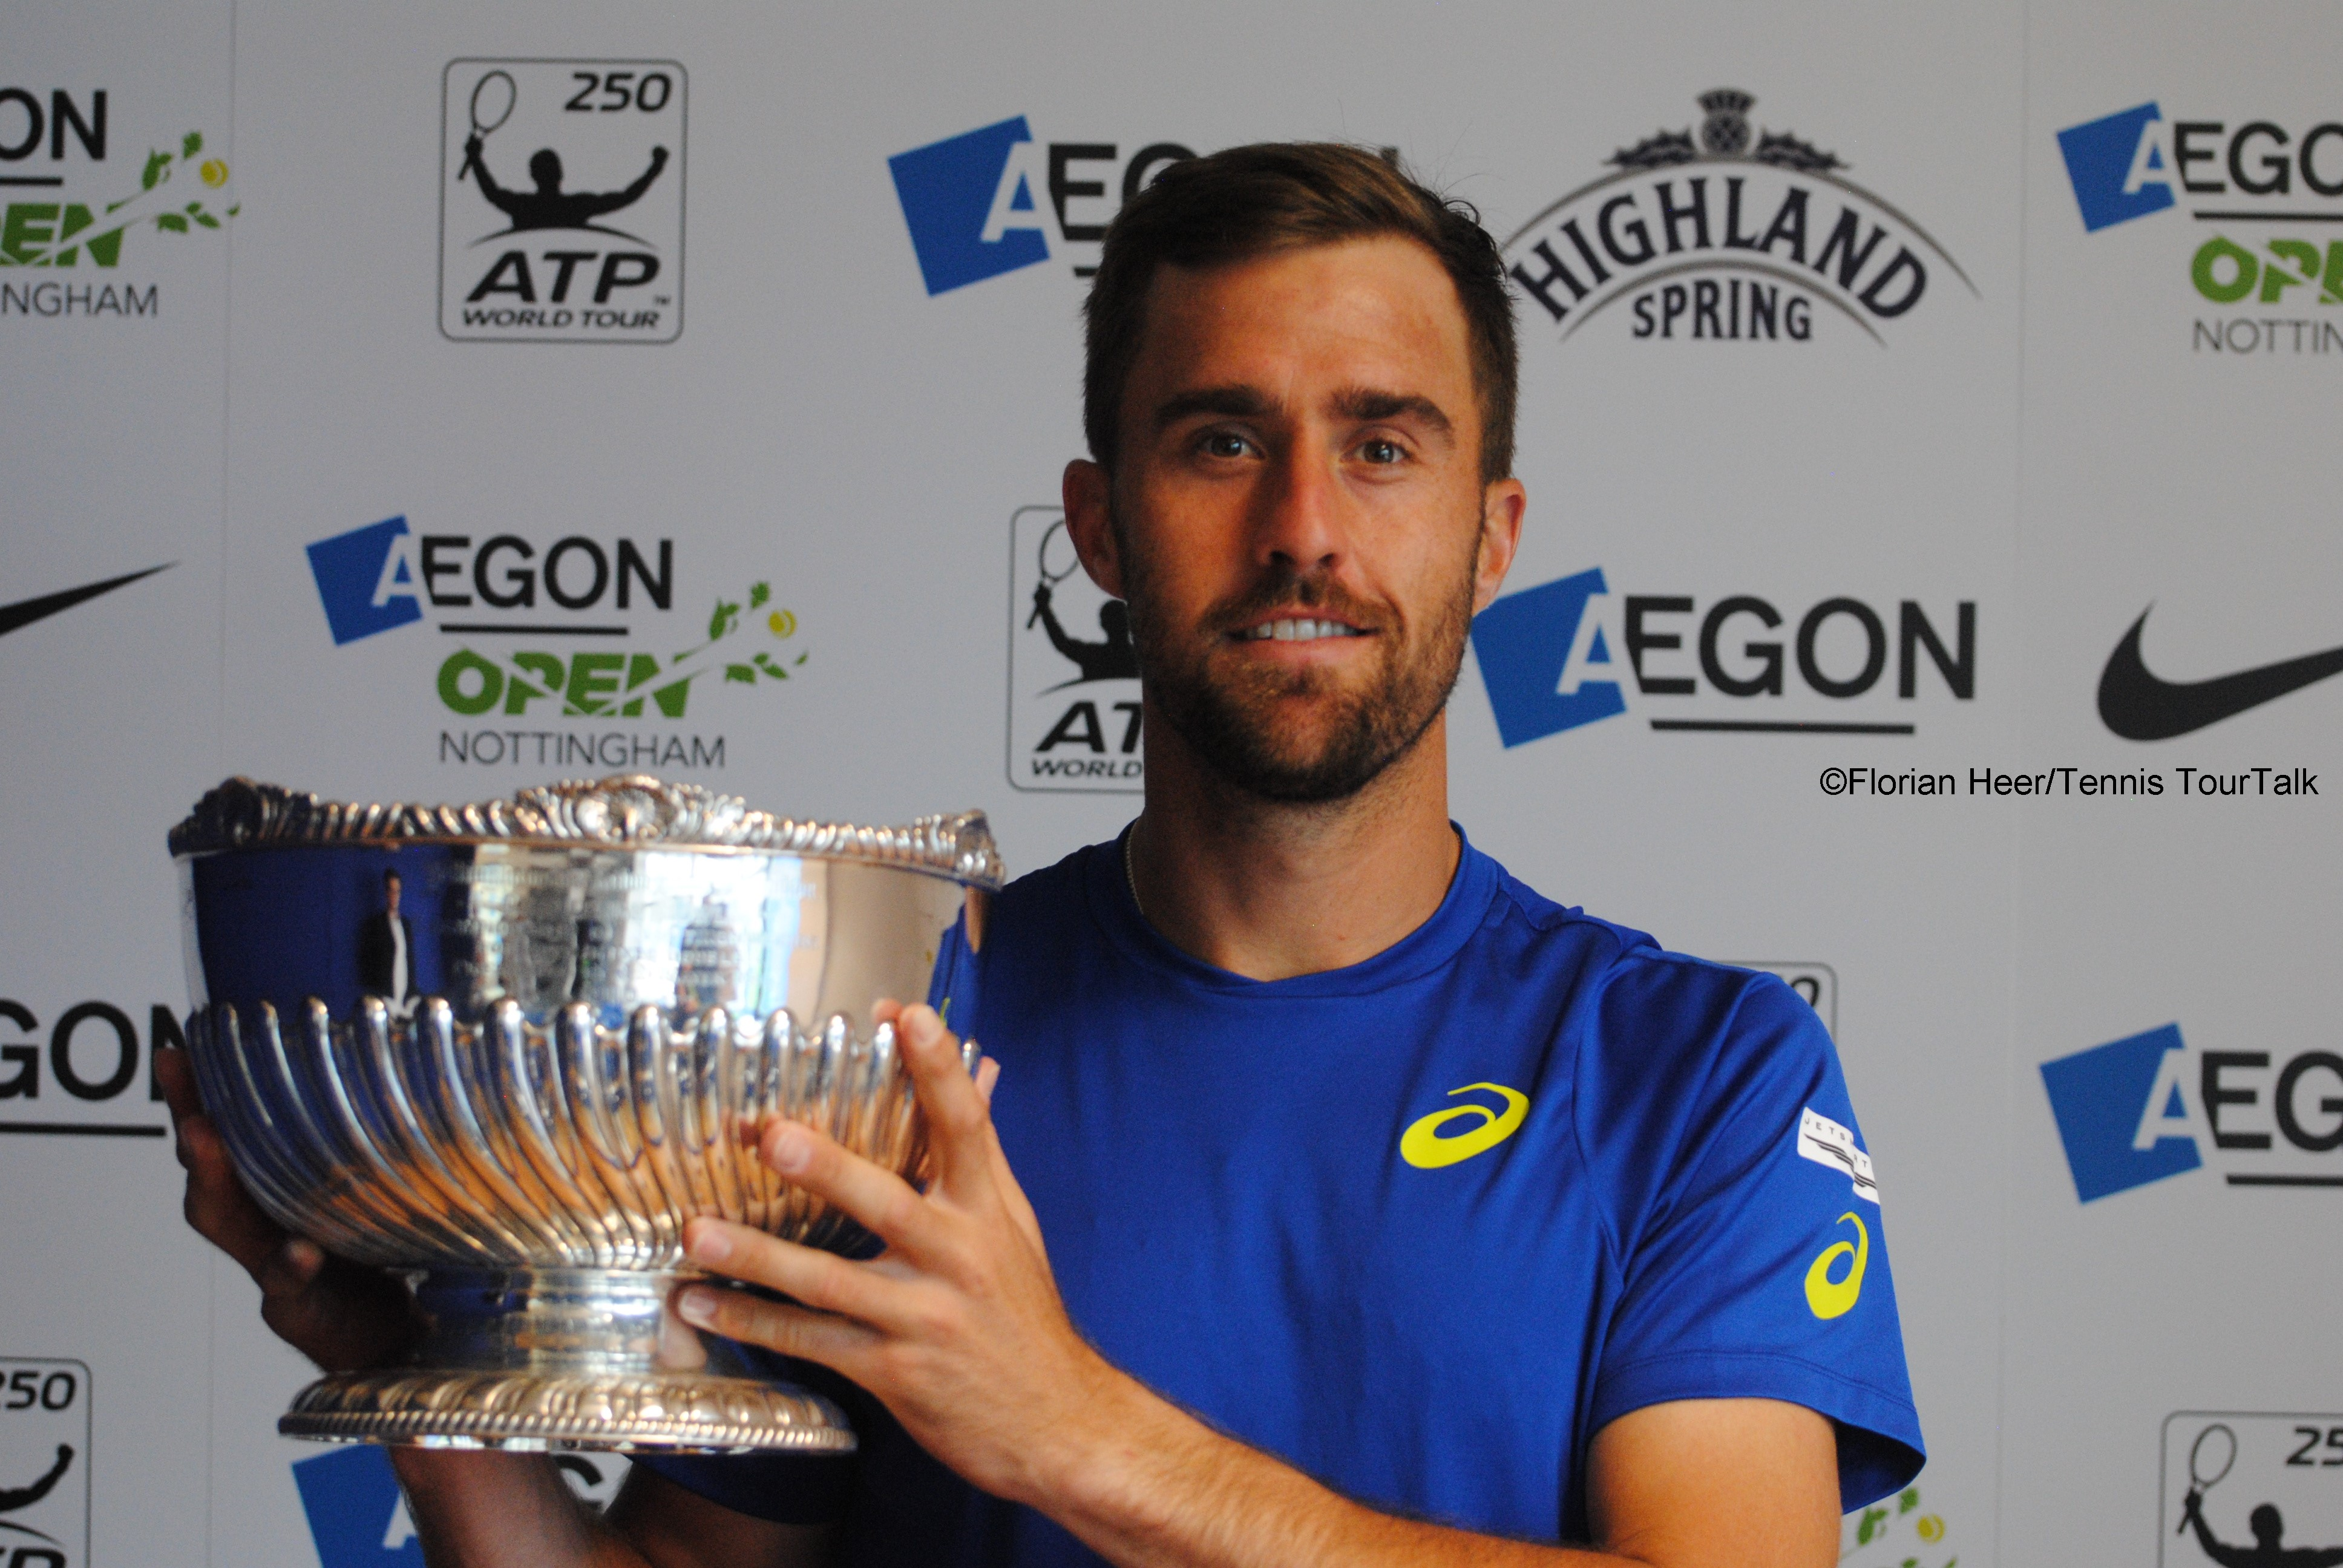 Steve Johnson 4 Tennis TourTalk